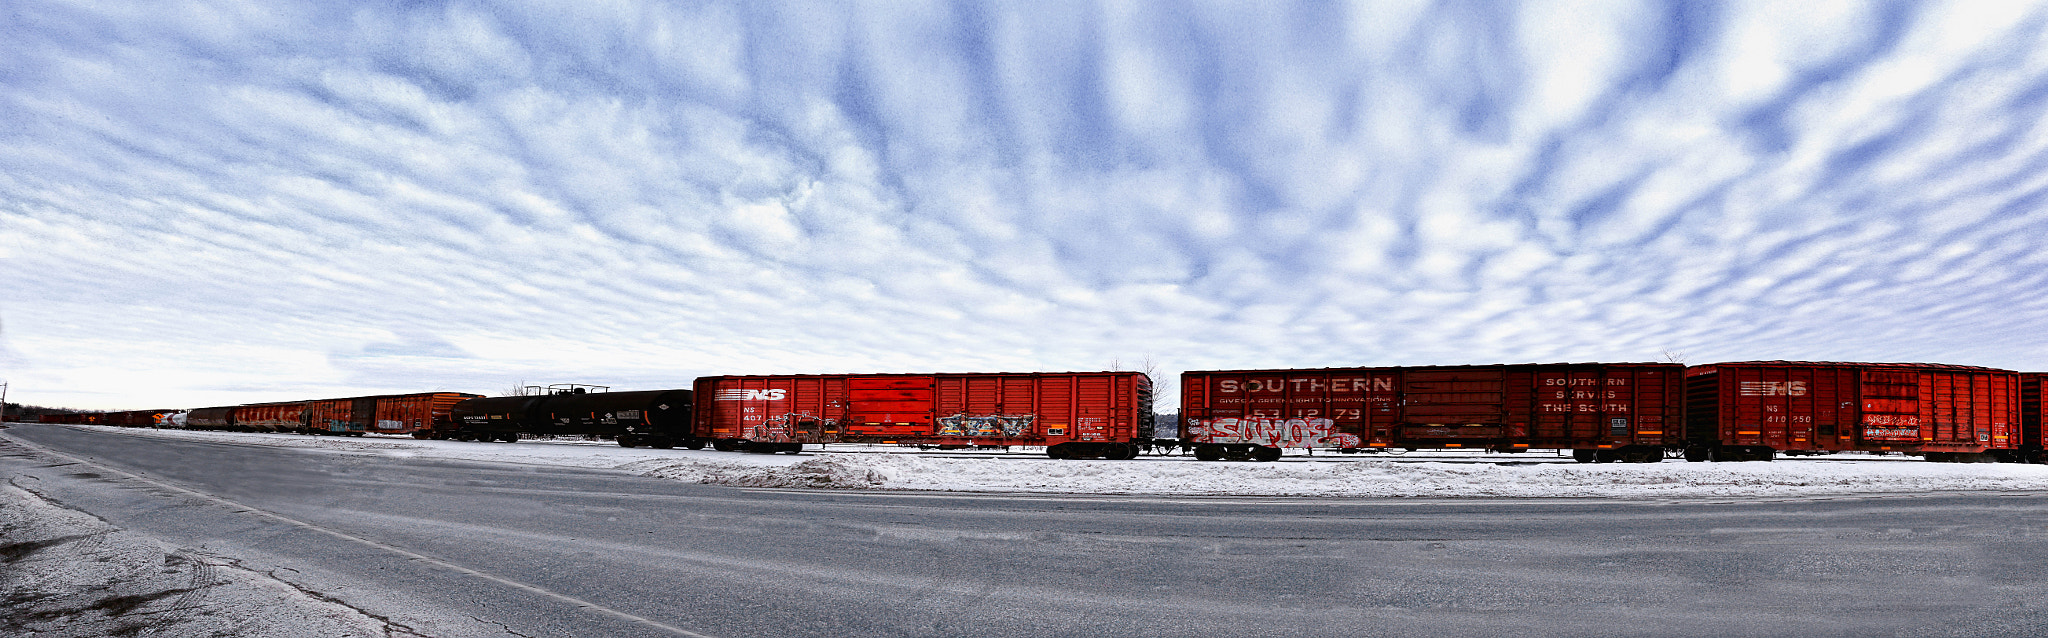 Photograph Train to Nowhere by Matt H on 500px